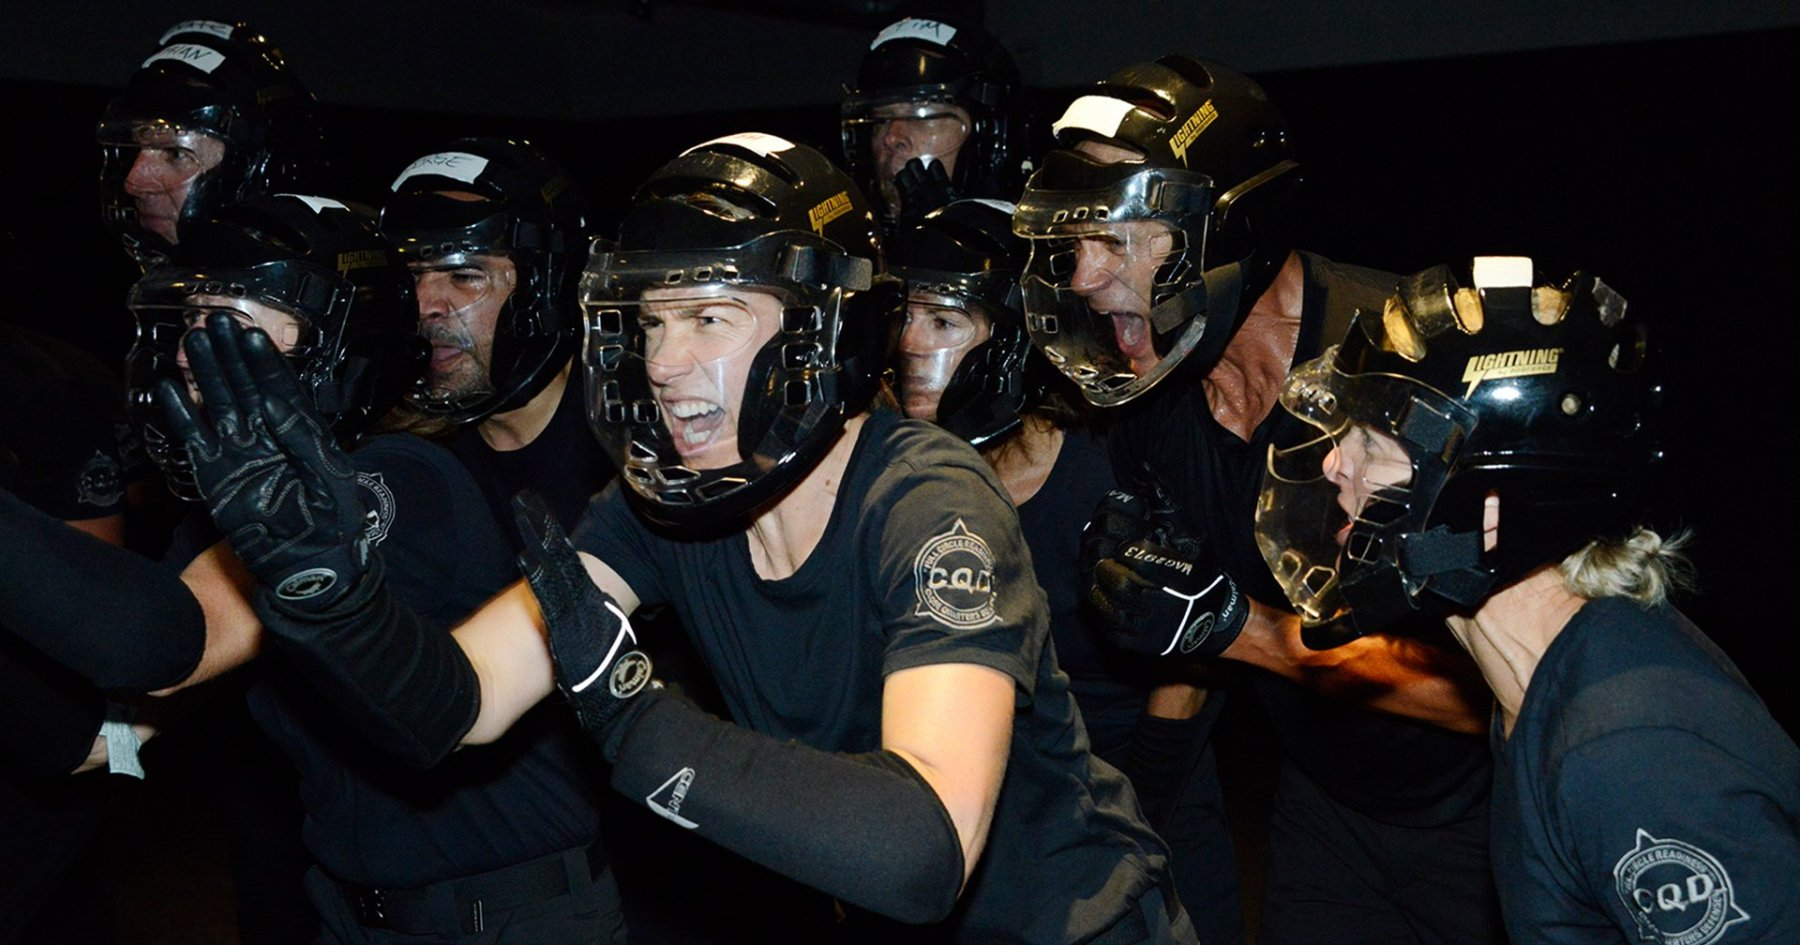 Is a Navy SEAL Defense Course the Answer to Police Violence in America?